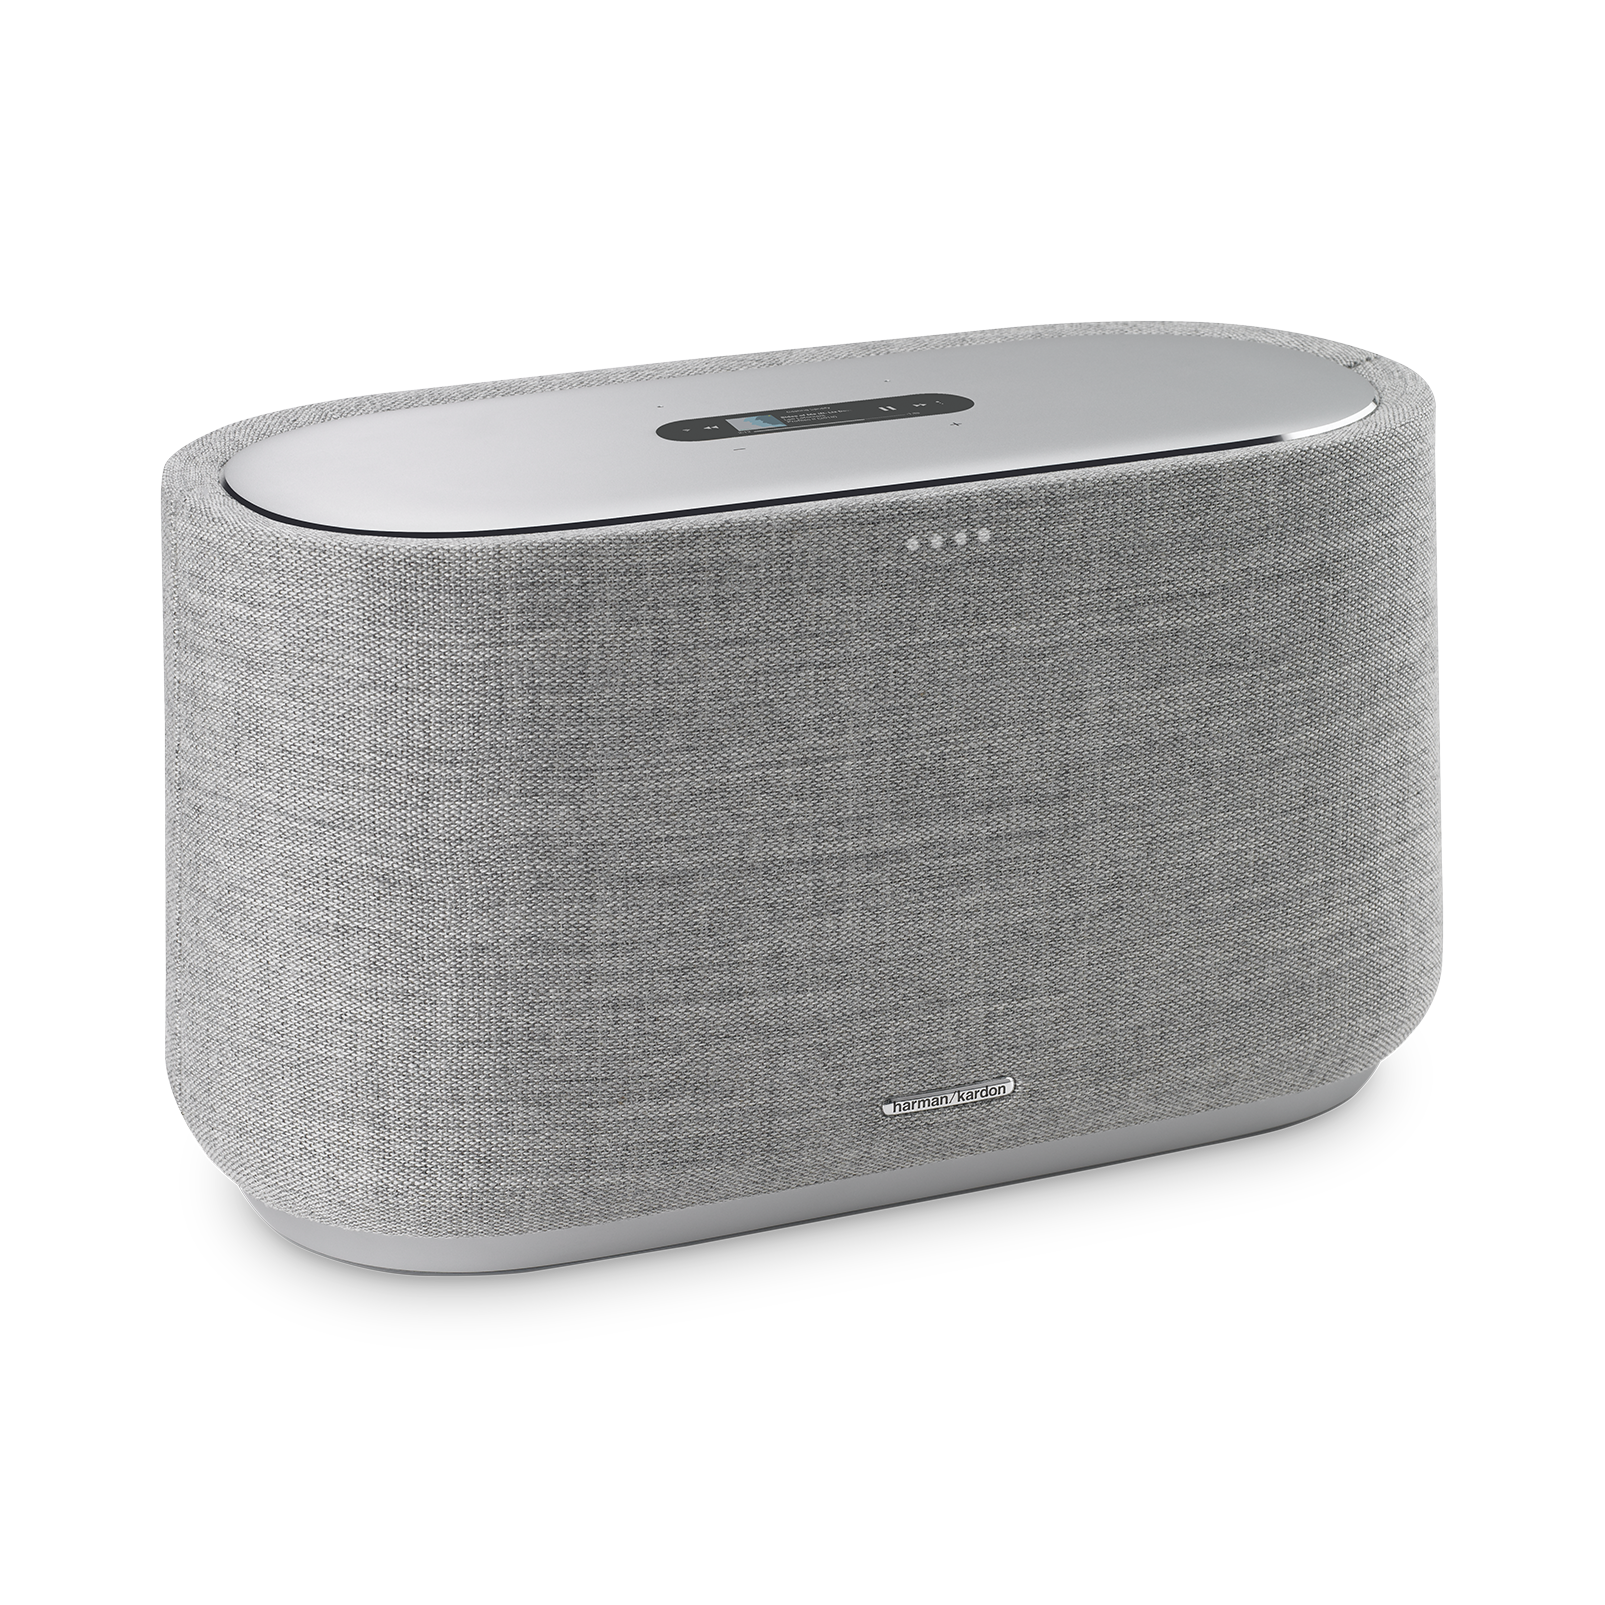 Harman Kardon Citation 500 - Grey - Large Tabletop Smart Home Loudspeaker System - Hero